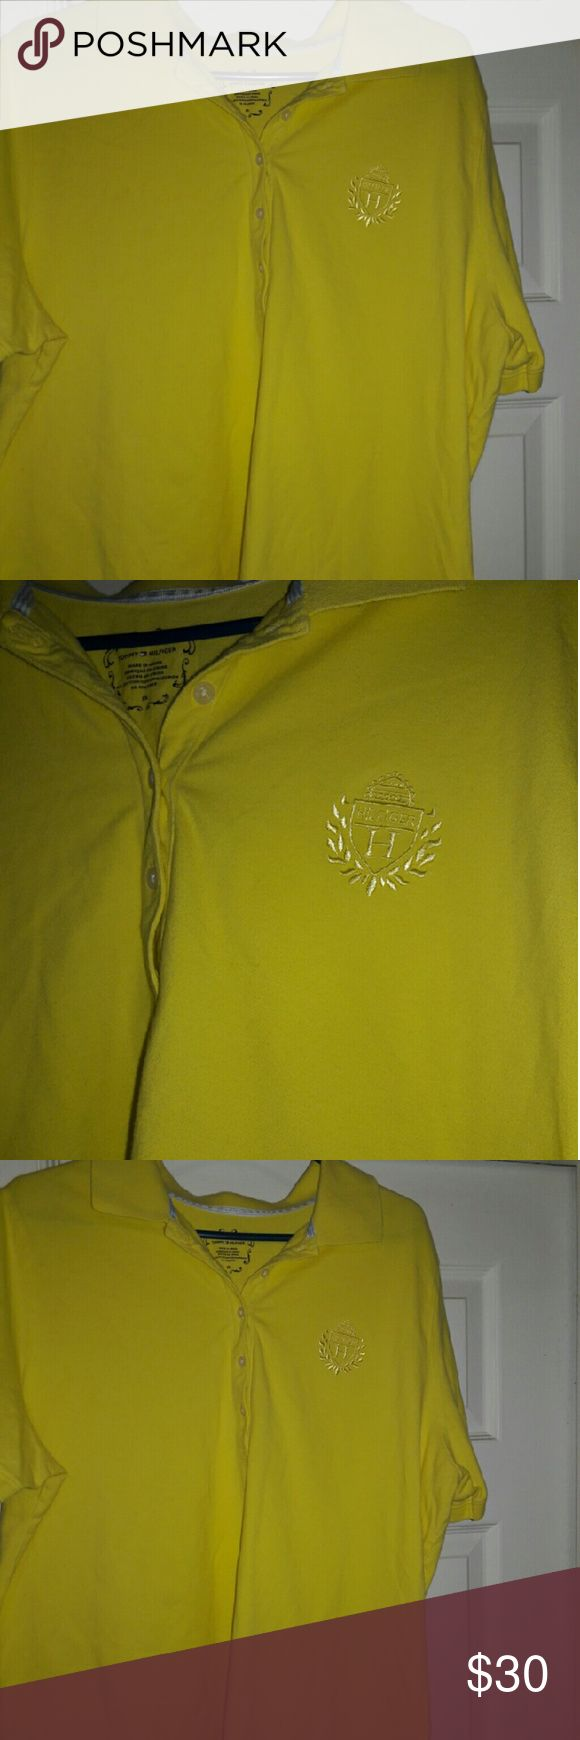 Womens Tommy Hilfiger yellow polo shirt  2x Used Tommy  Hilfiger womens yellow polo shirt size 2xl Tommy Hilfiger Other